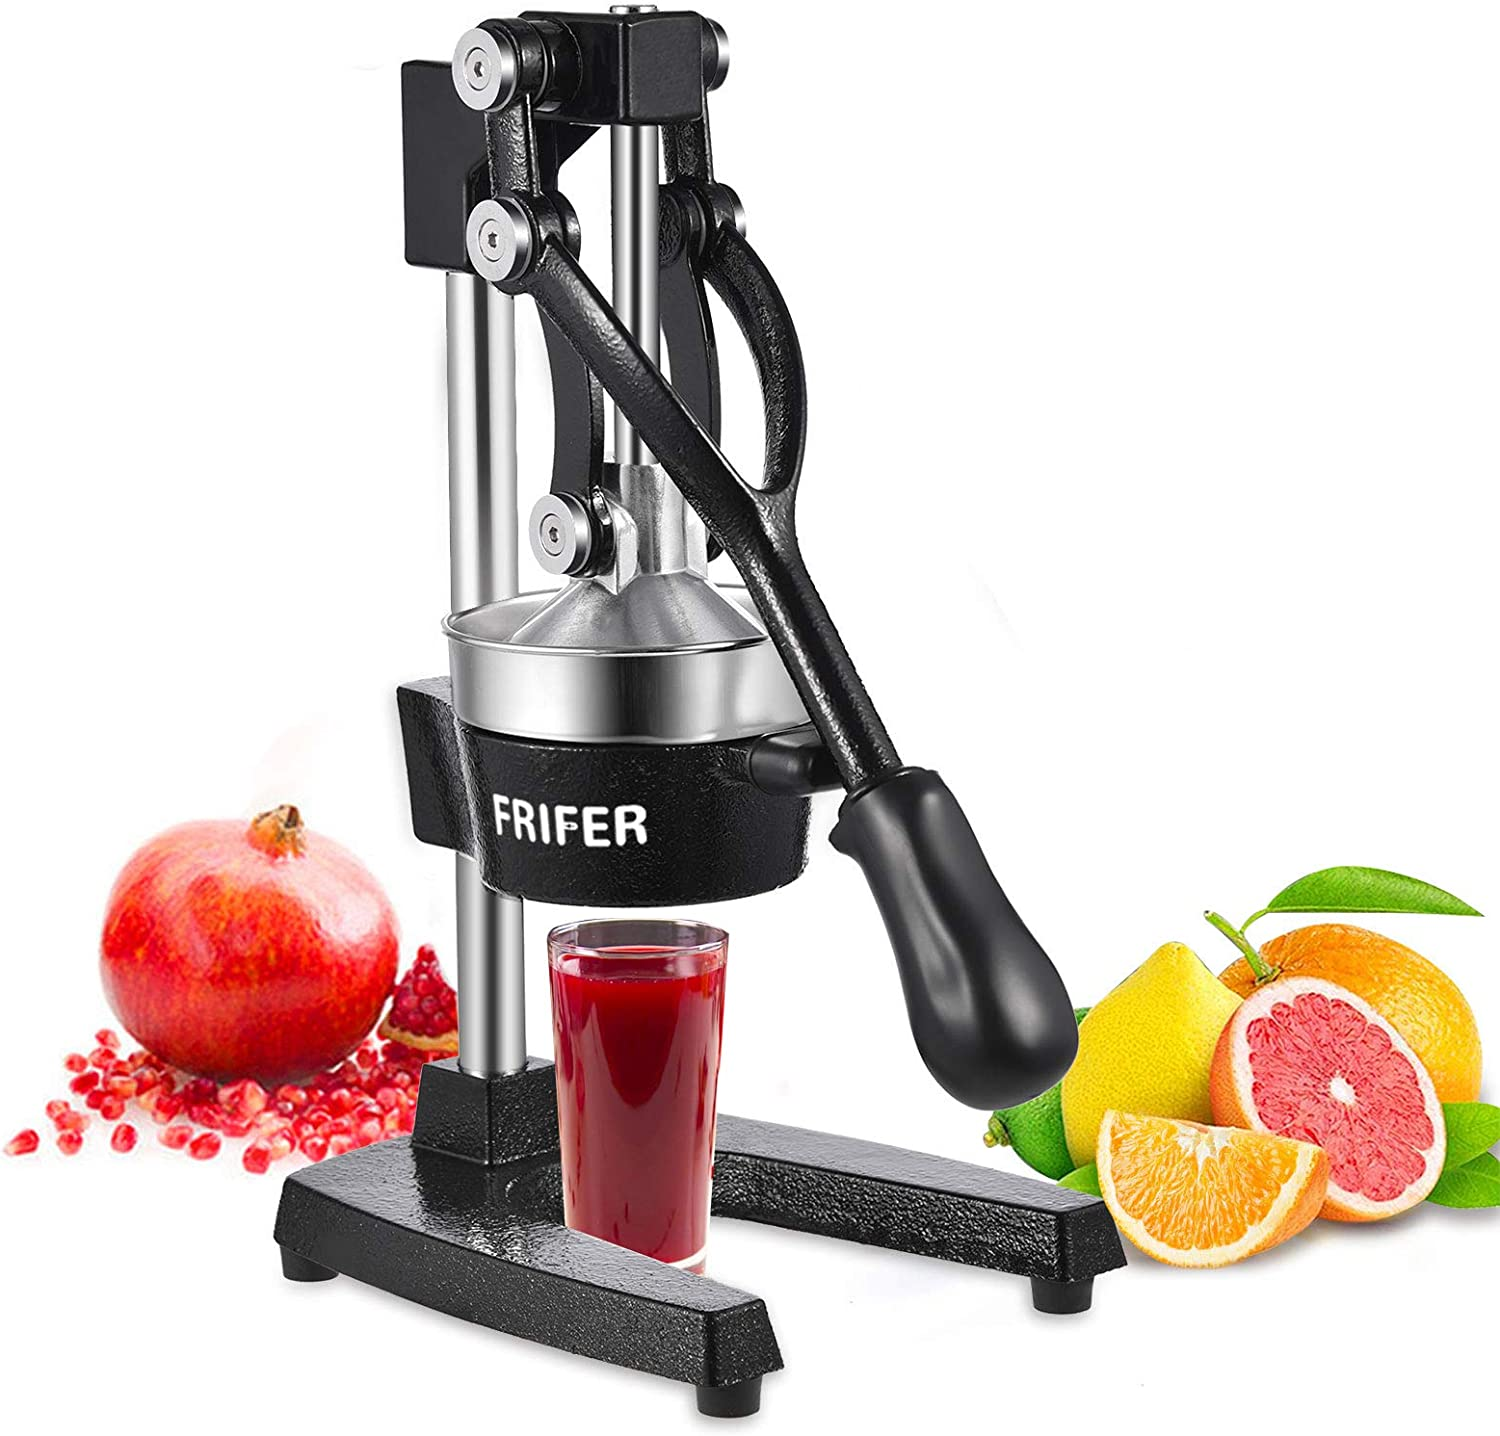 Frifer Manual Citrus Juicer Hand Press,Commercial Orange Lemon Juicer Squeezer Heavy Duty Cast Iron Fuselage and Base,Stainless Steel Funnel&filter screen,Durable and Easy to Clean(Black)